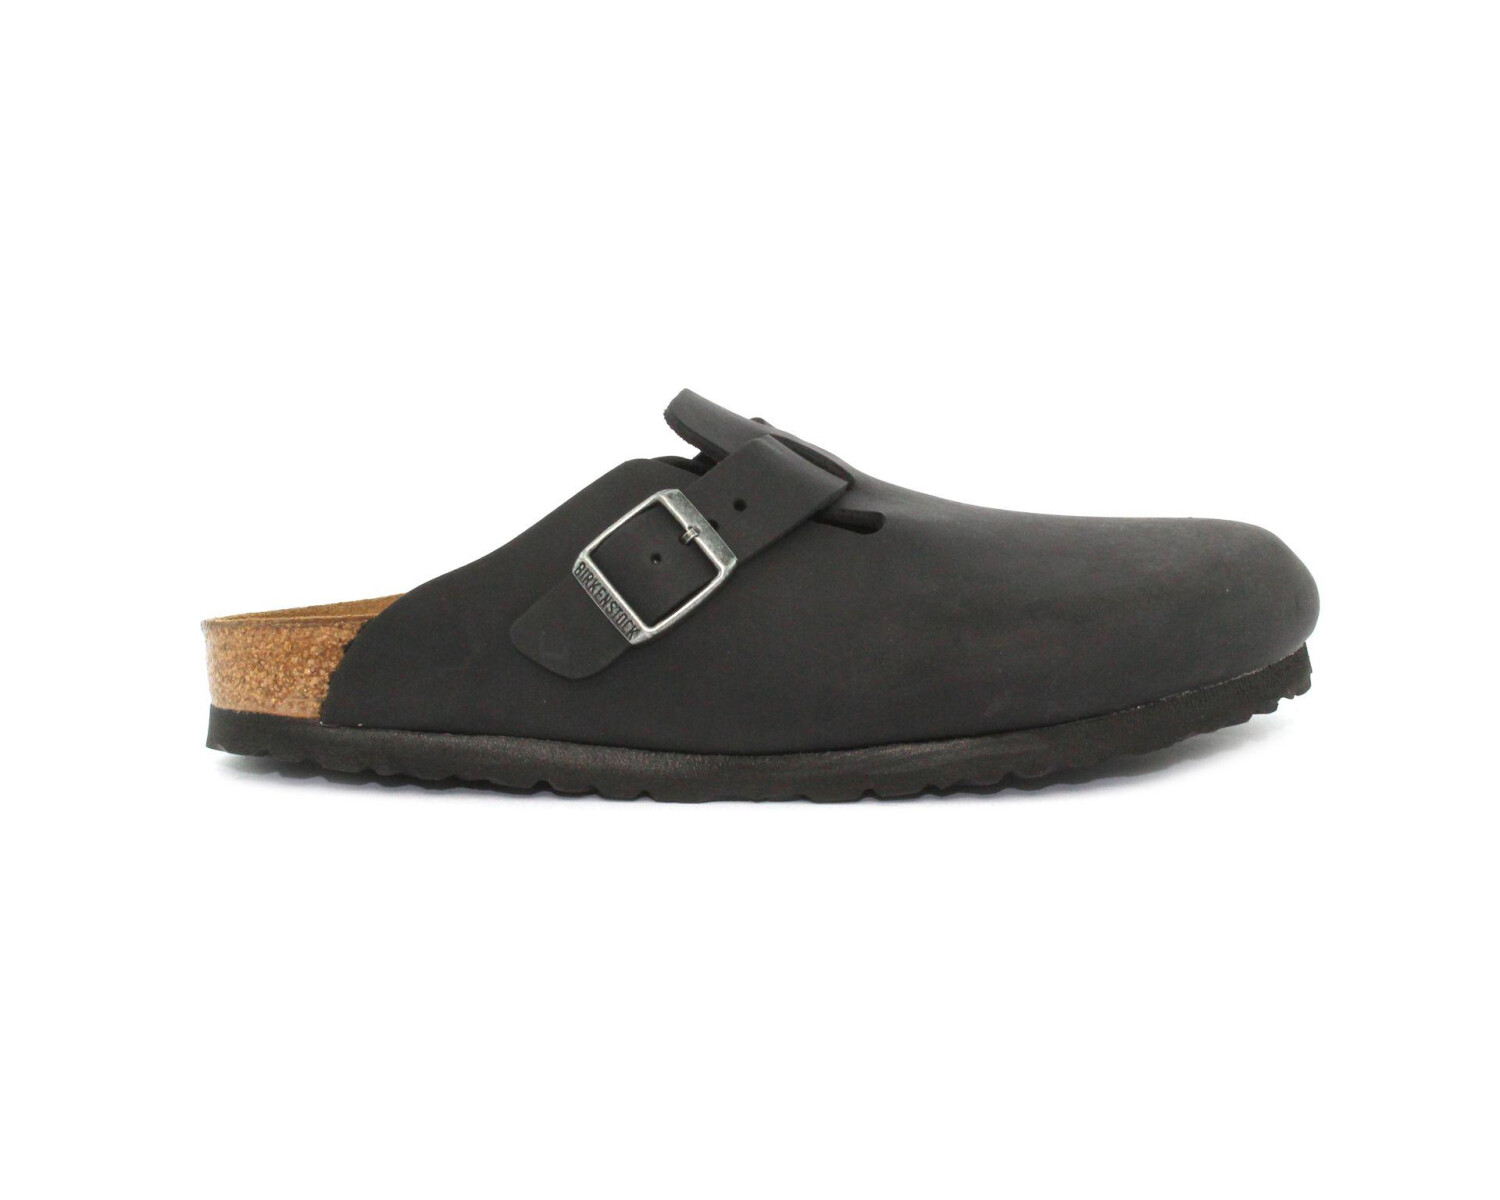 brand new 34d85 c887c Slipper BIRKENSTOCK BOSTON BS Black 59463